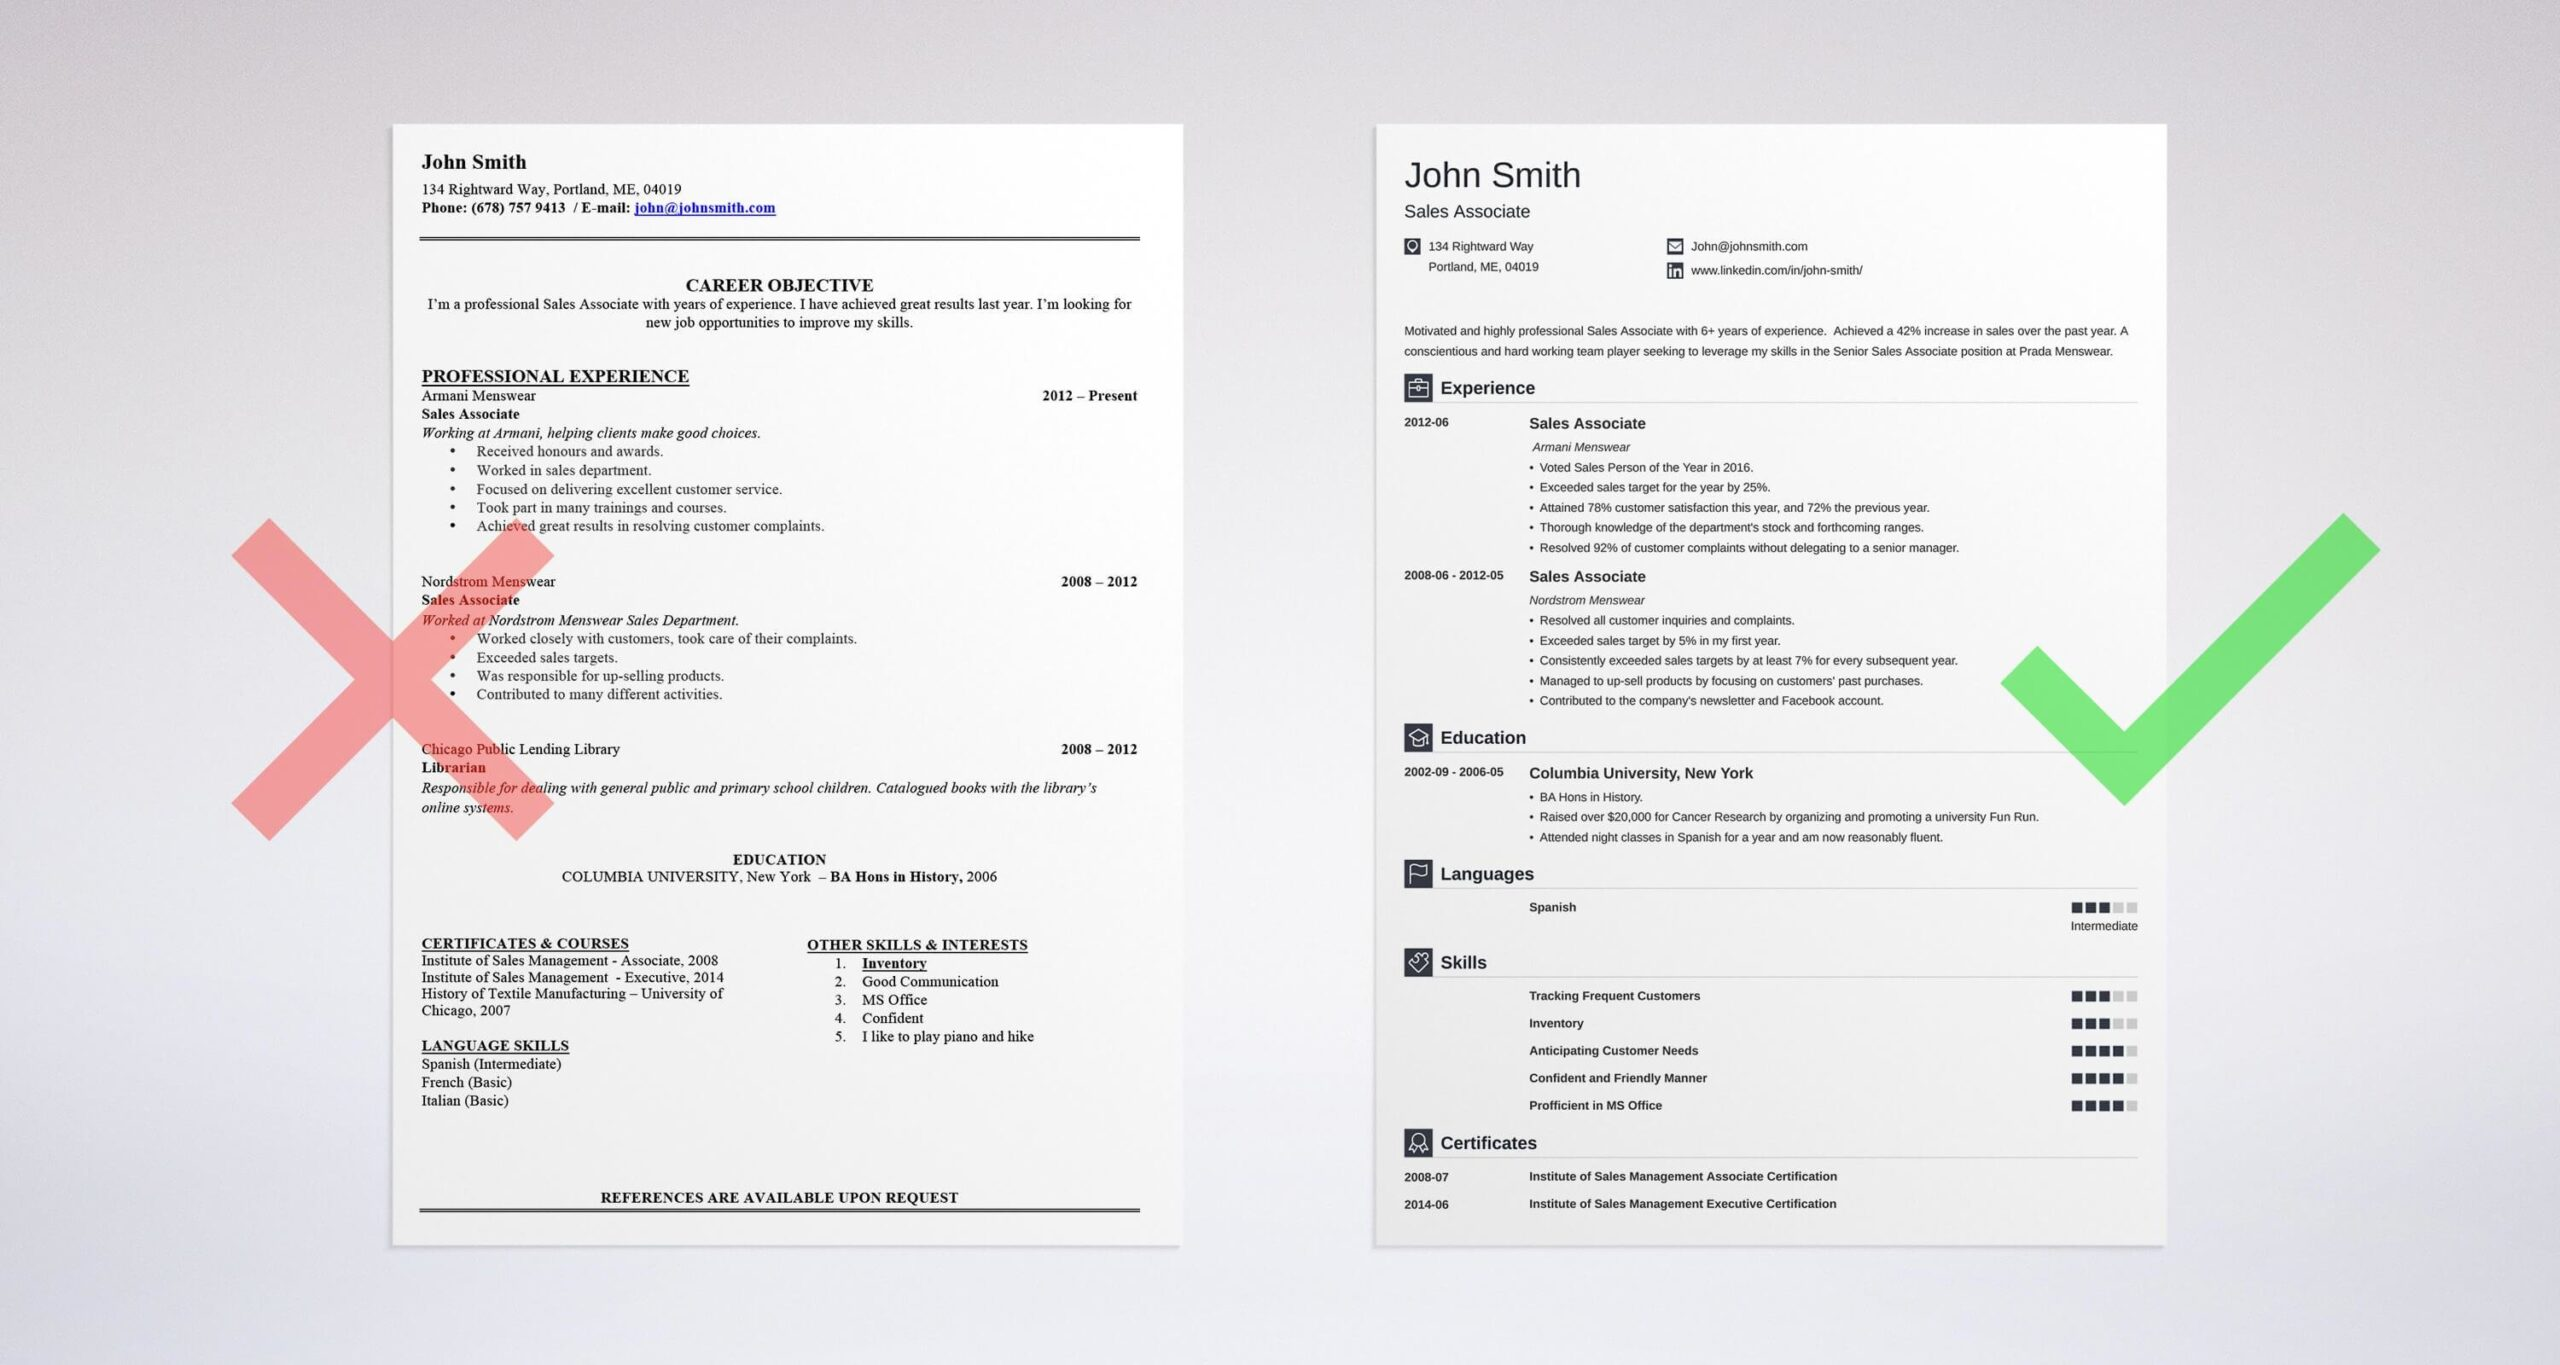 professional resume summary examples statements self for sample on template light Resume Self Summary For Resume Sample